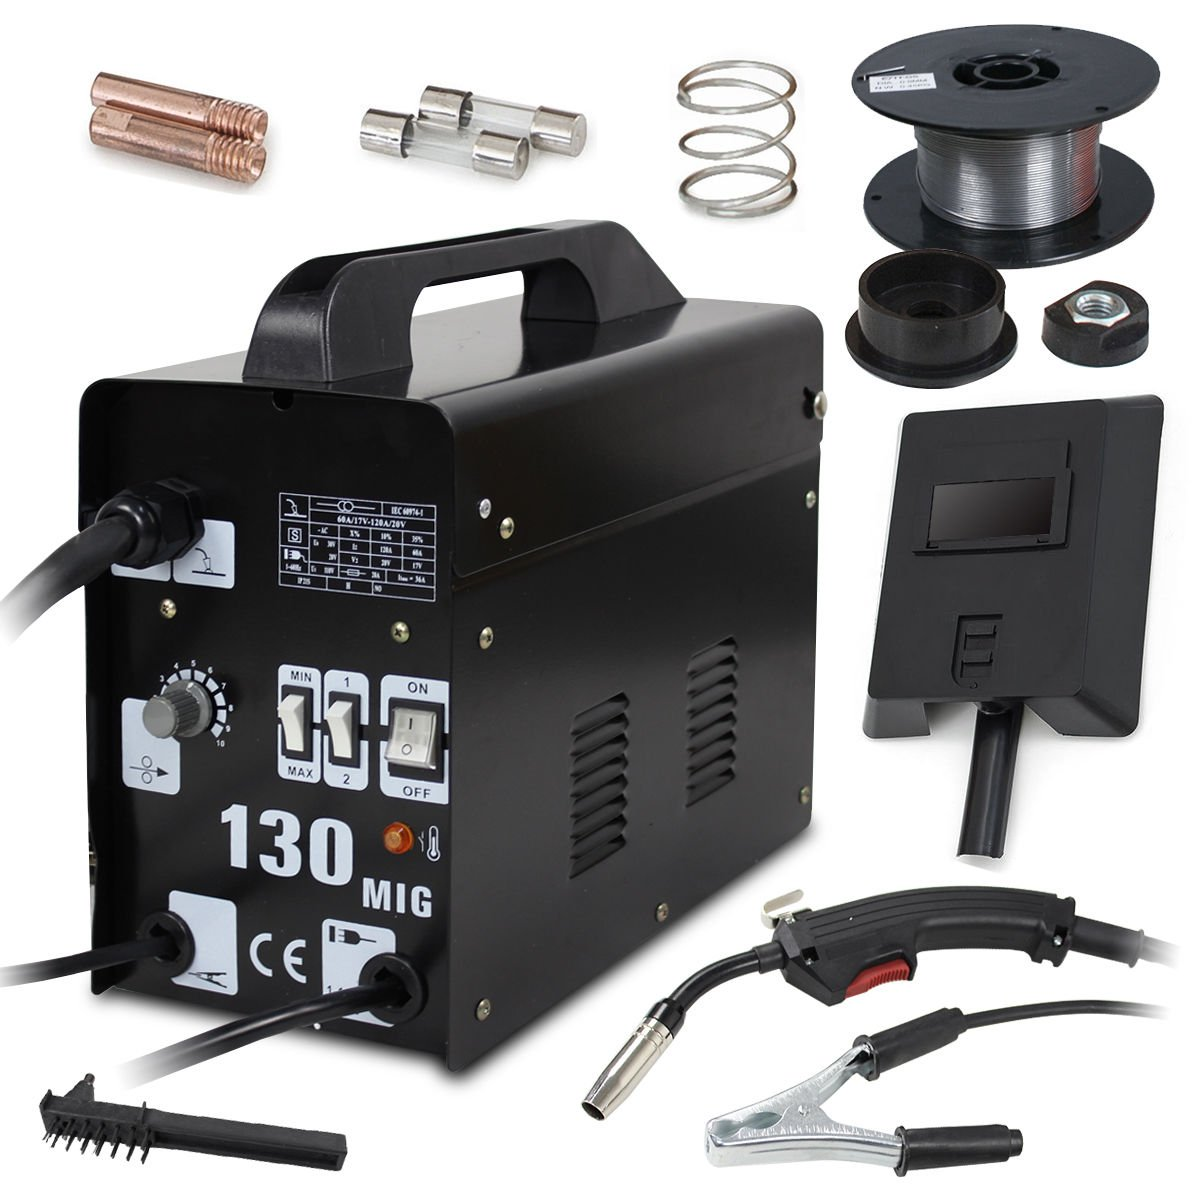 Super Deal PRO Commercial MIG 130 AC Flux Core Wire Automatic Feed Welder Welding Machine w/Free Mask 110V by SUPER DEAL